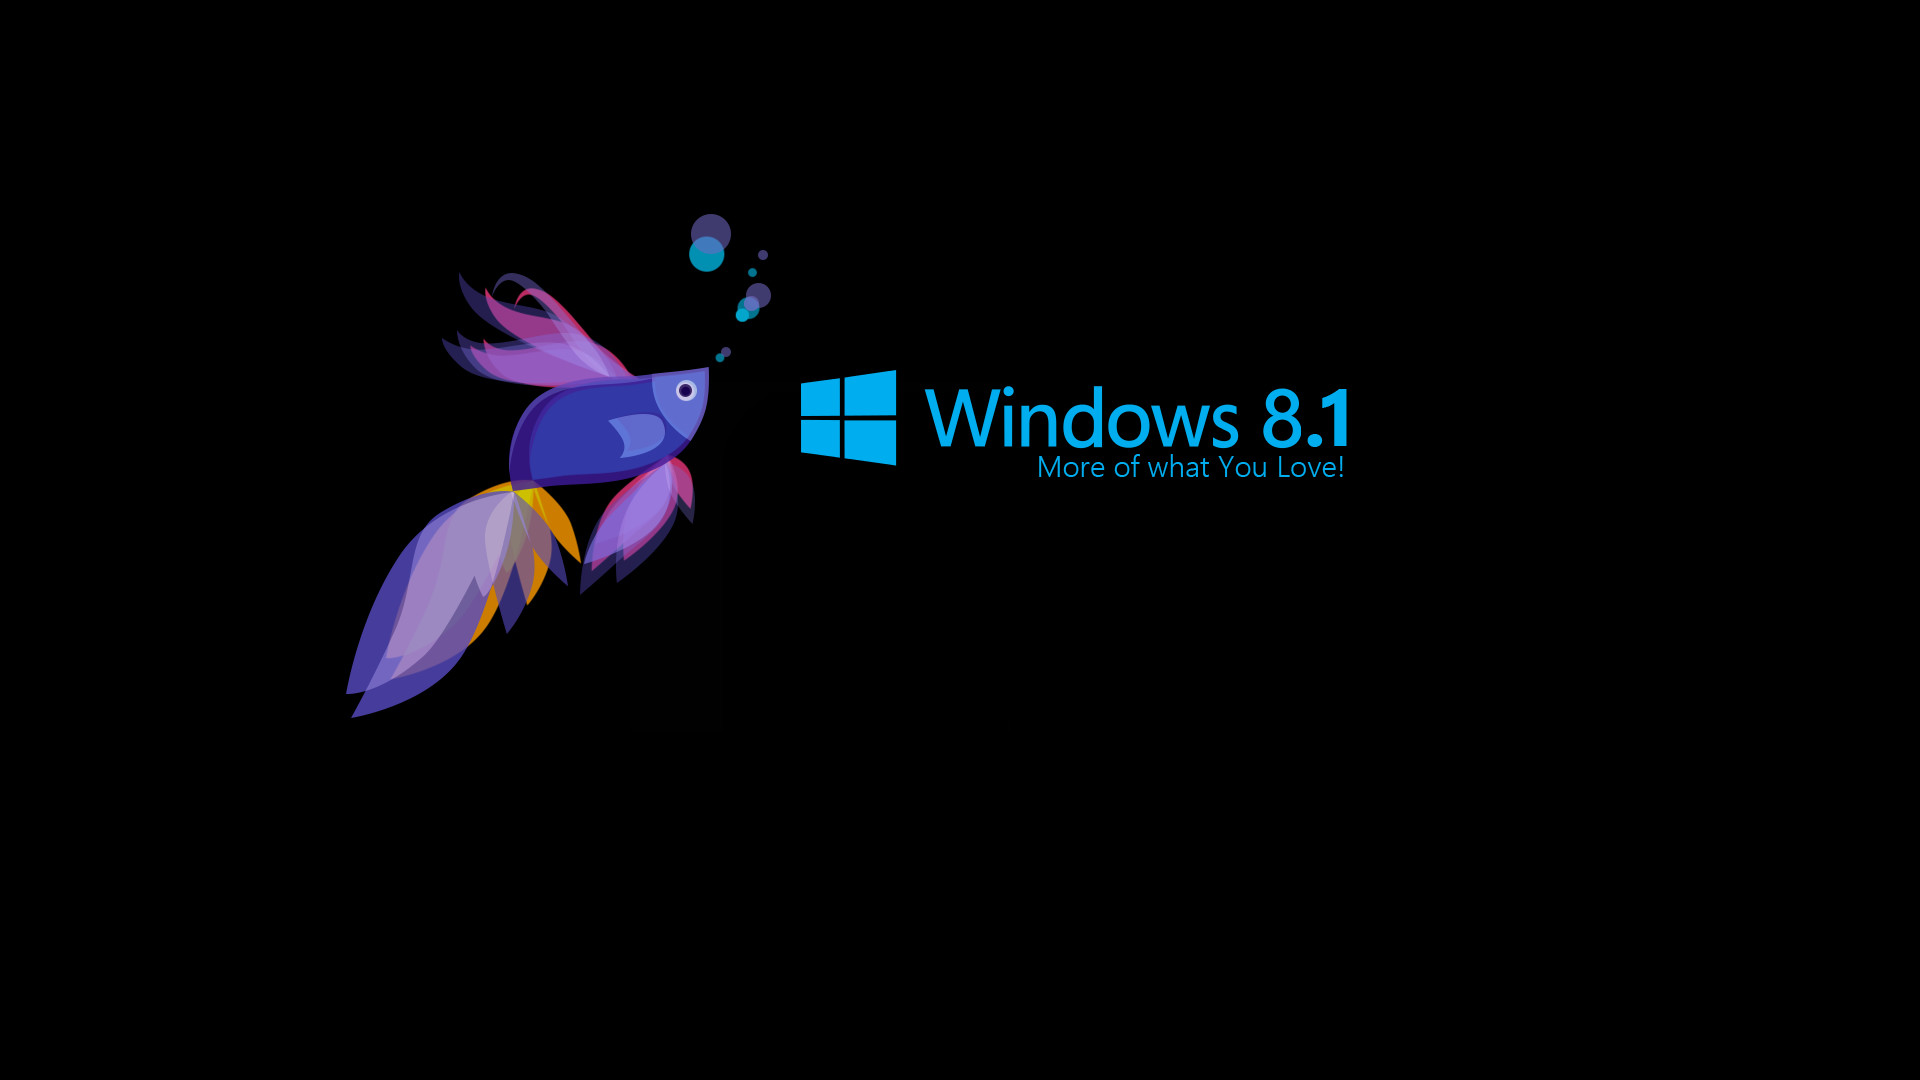 Wallpaper windows 8 1 full hd